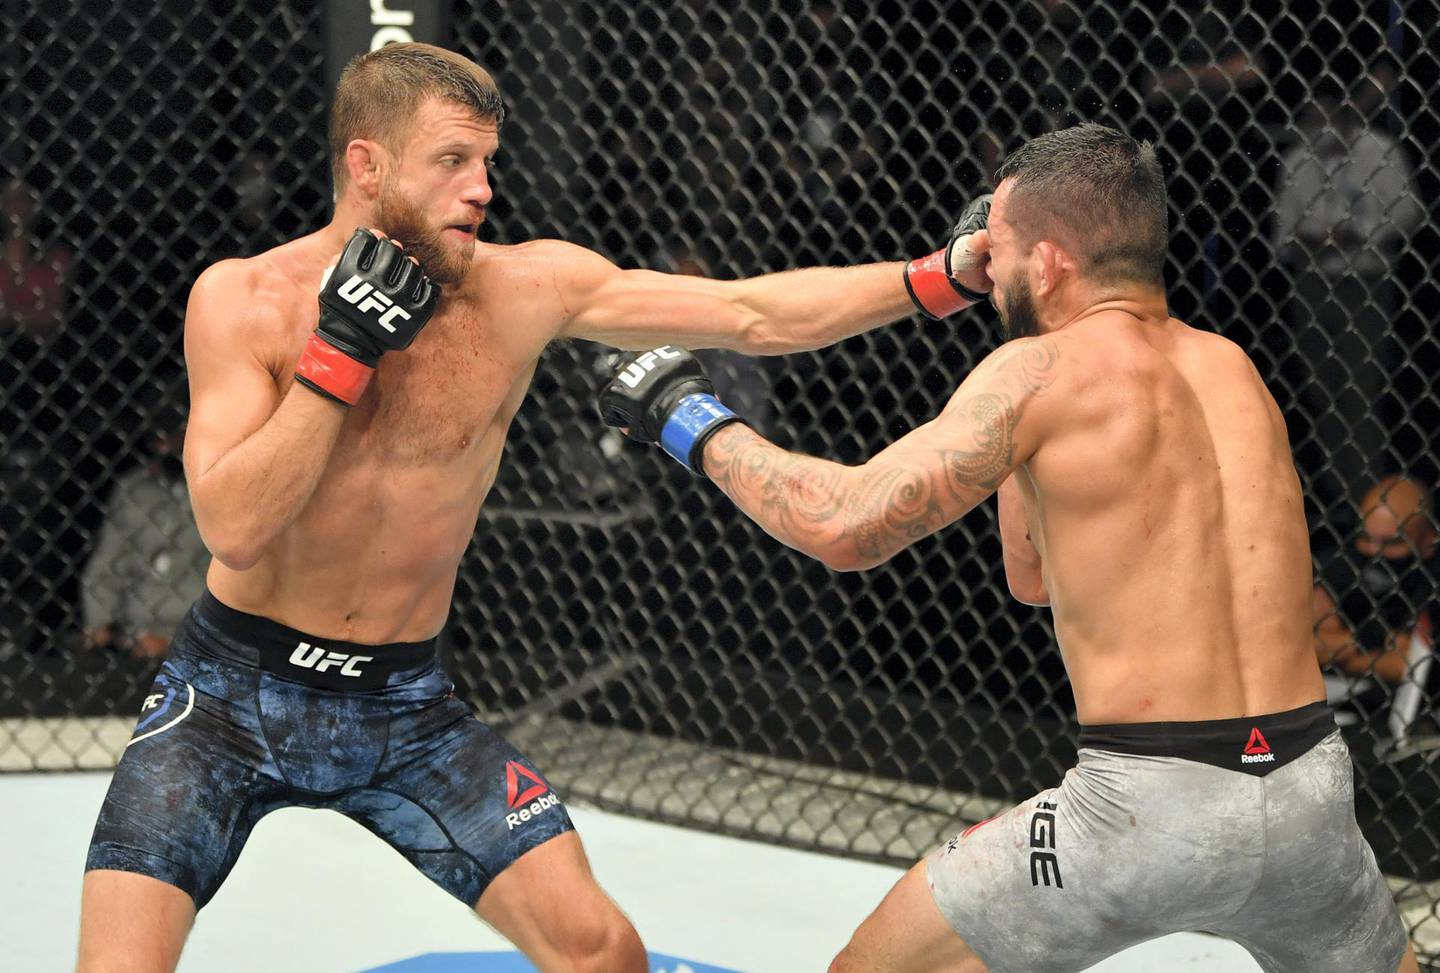 ABU DHABI, UNITED ARAB EMIRATES - JULY 16: (L-R) Calvin Kattar punches Dan Ige in their featherweight fight during the UFC Fight Night event inside Flash Forum on UFC Fight Island on July 16, 2020 in Yas Island, Abu Dhabi, United Arab Emirates. (Photo by Jeff Bottari/Zuffa LLC via Getty Images)